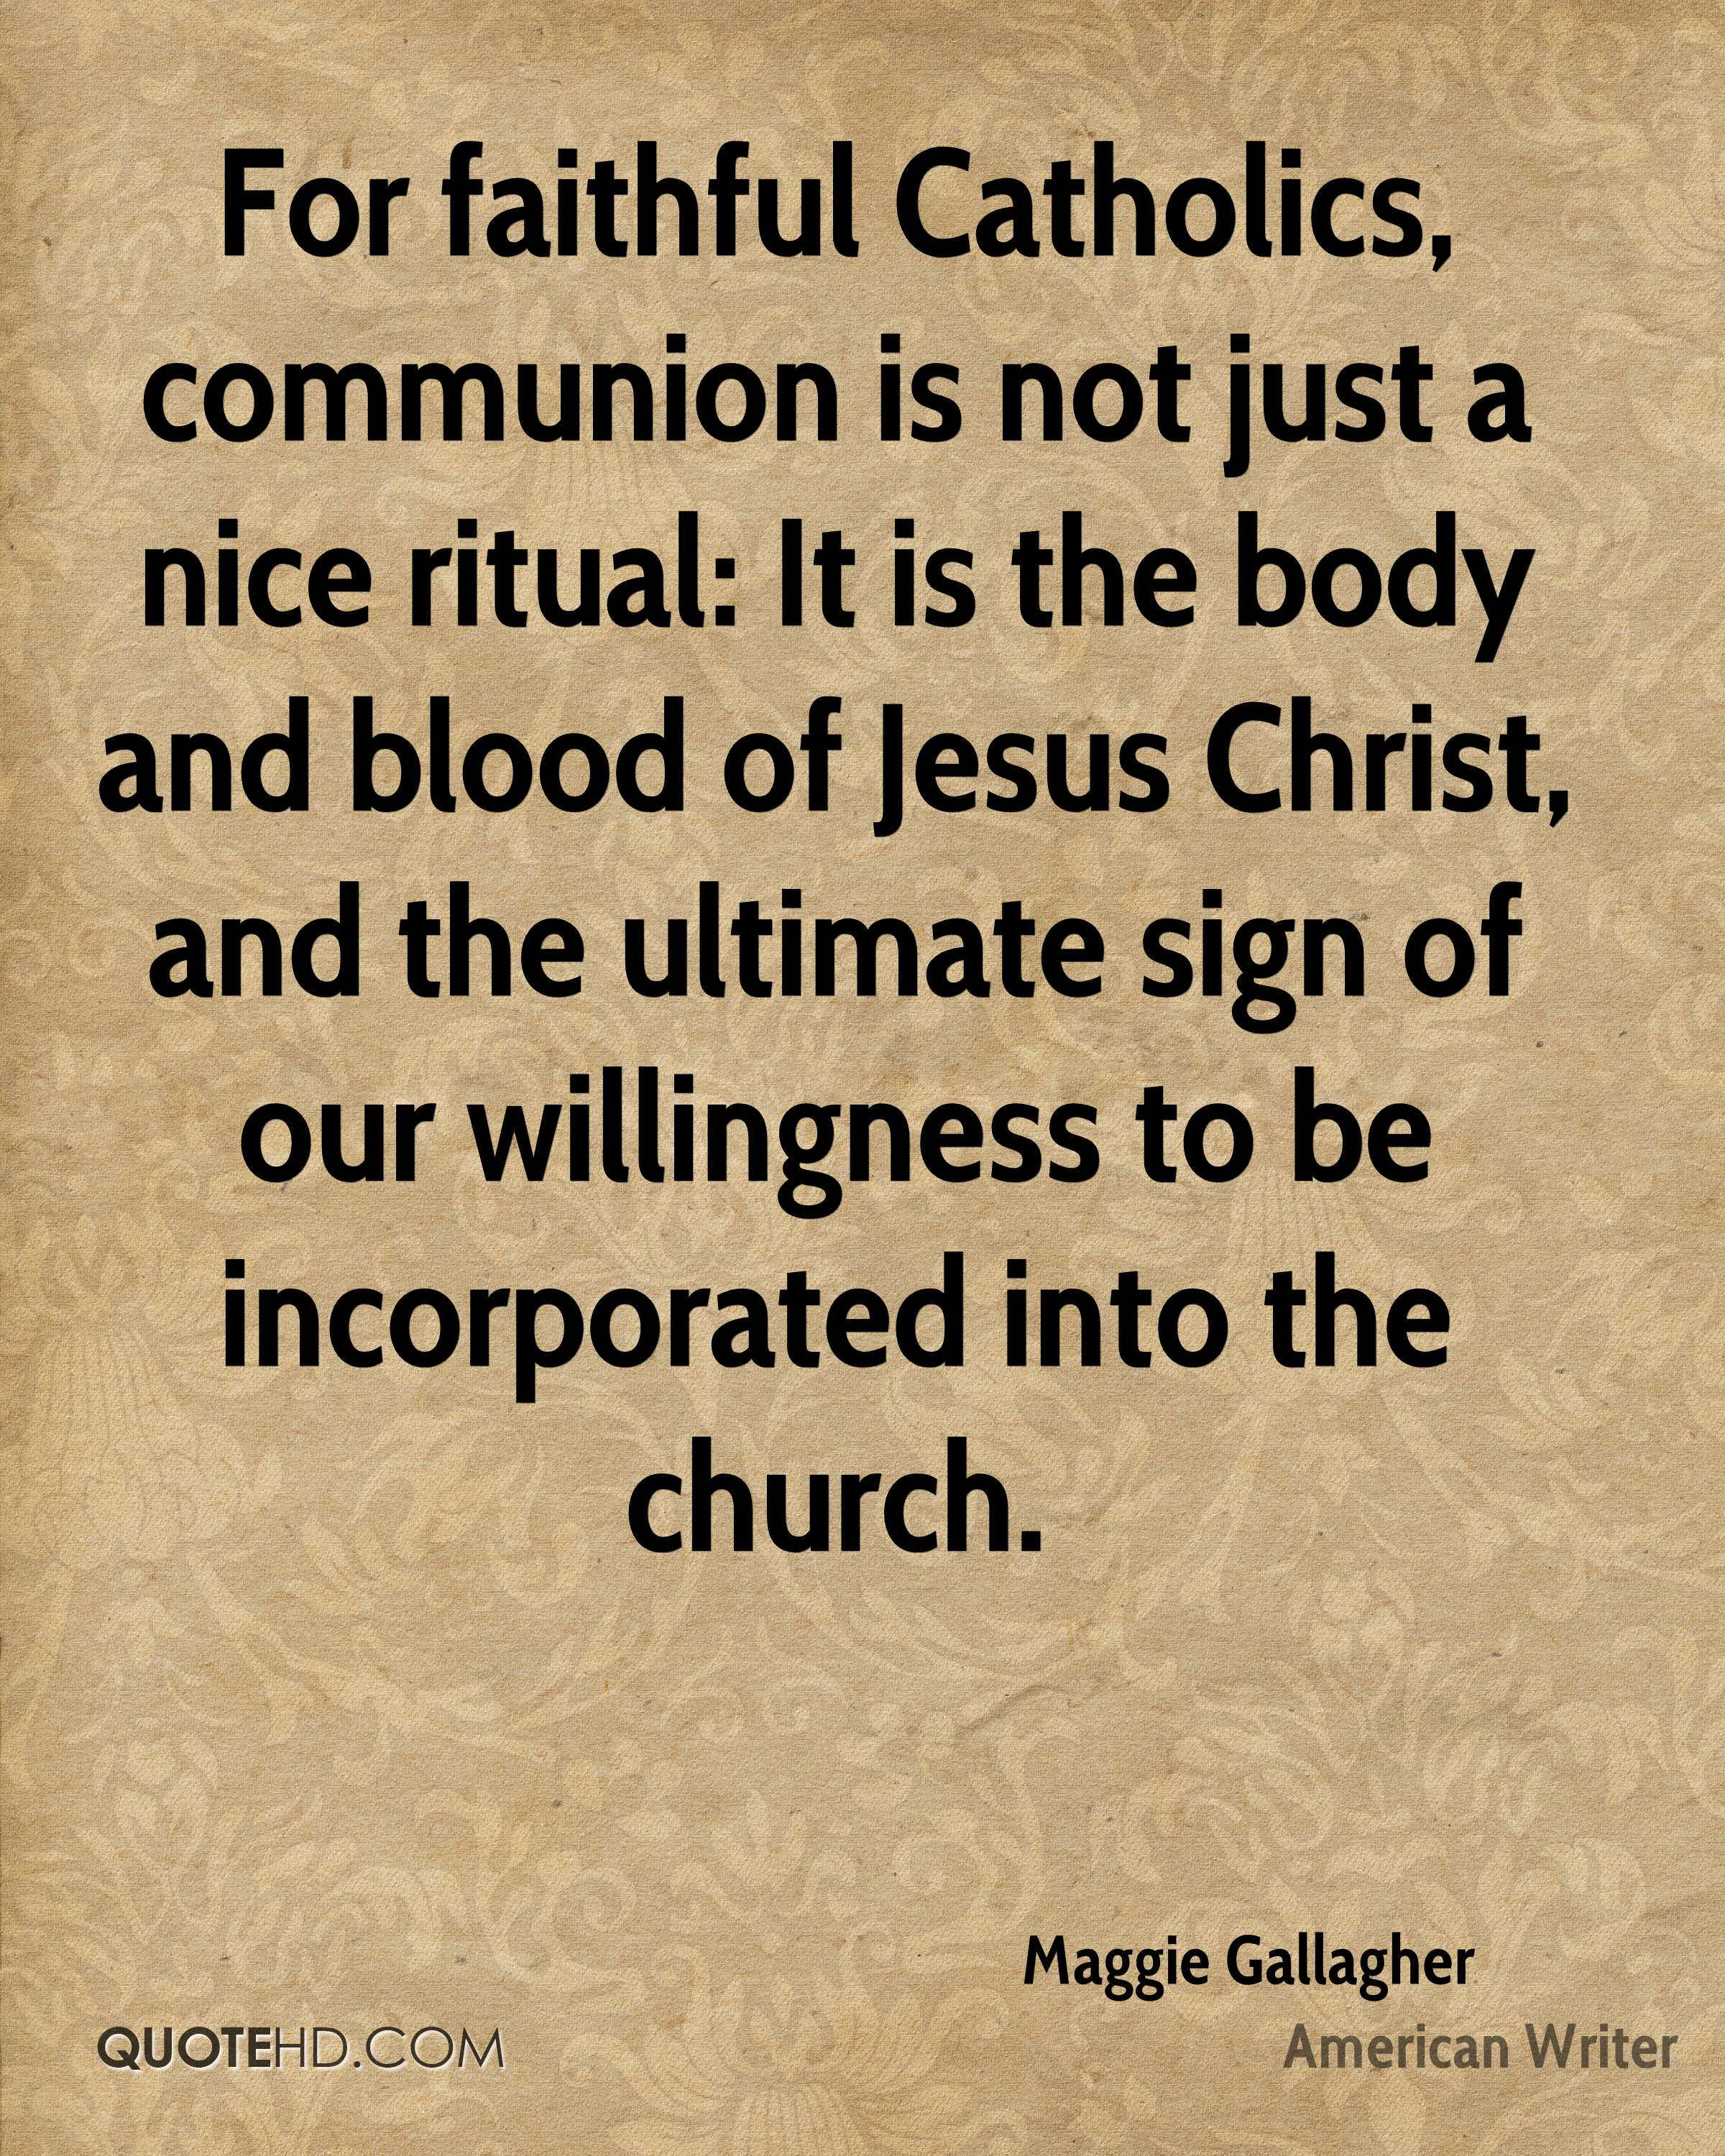 For faithful Catholics, communion is not just a nice ritual: It is the body and blood of Jesus Christ, and the ultimate sign of our willingness to be incorporated into the church.